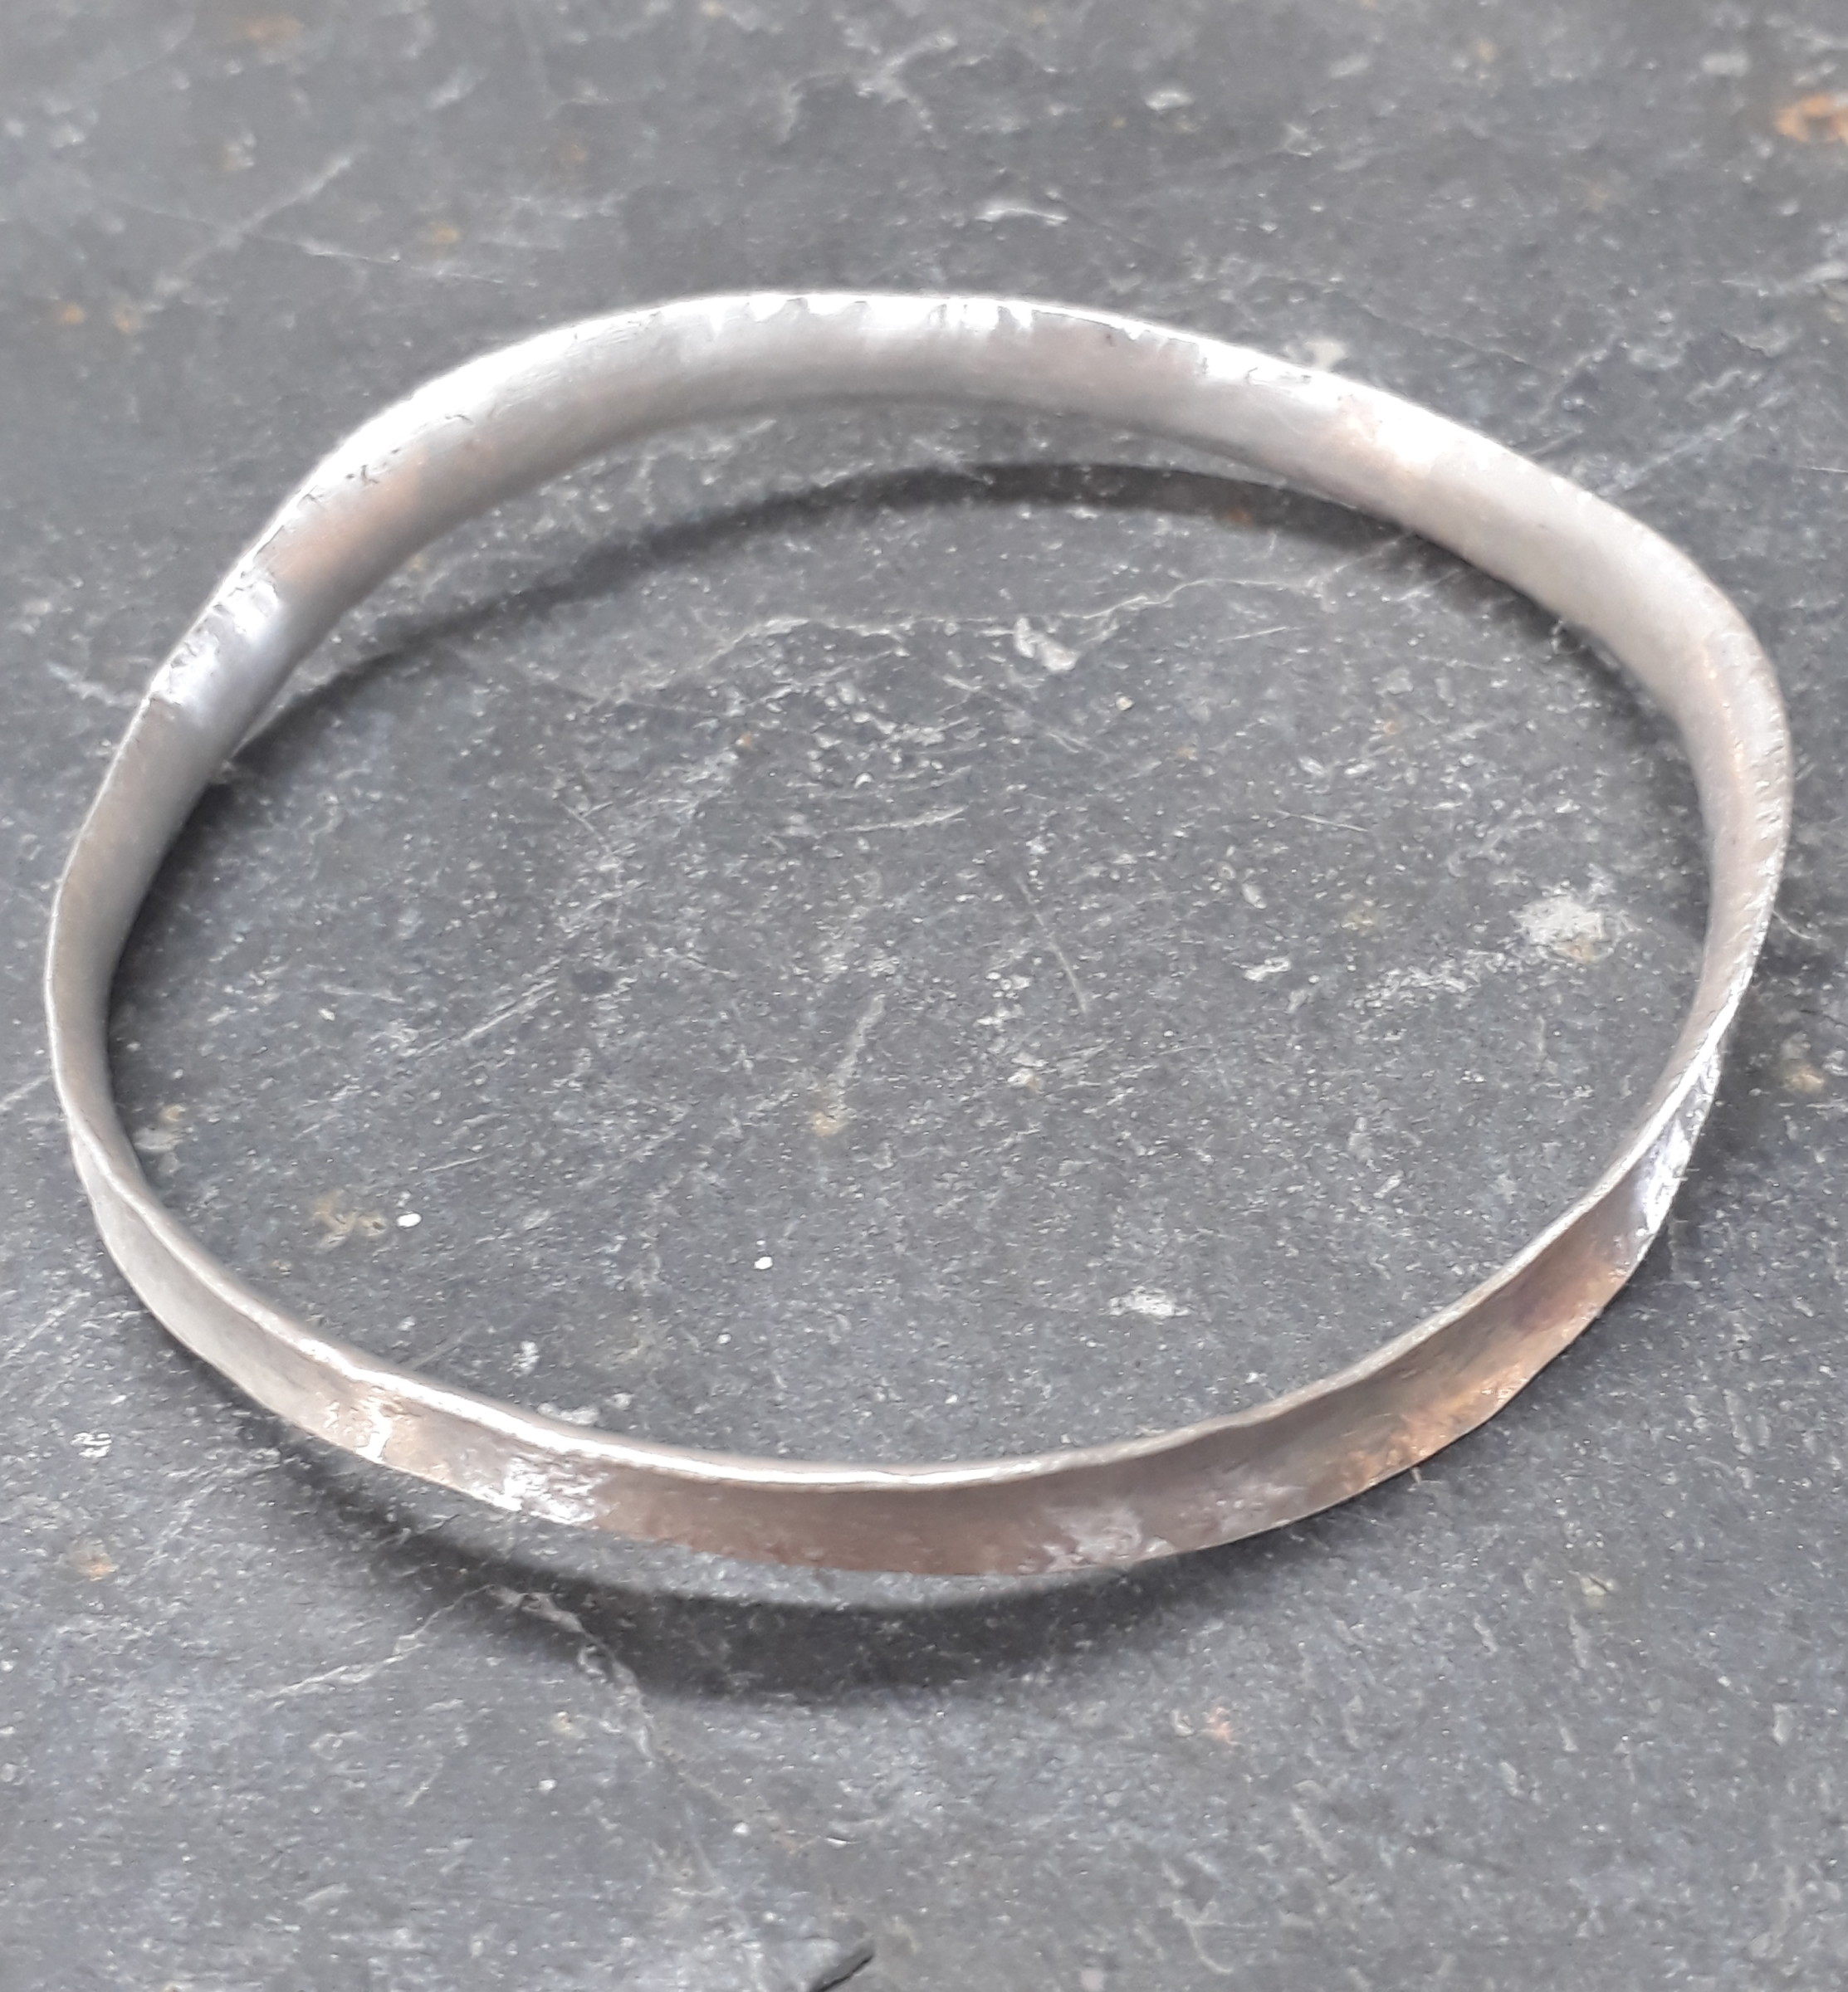 "<span class=""link fancybox-details-link""><a href=""/artists/148-roberta-hopkins/works/5706-roberta-hopkins-wavelet-bangle-2018/"">View Detail Page</a></span><div class=""artist""><strong>Roberta Hopkins</strong></div> <div class=""title""><em>Wavelet Bangle</em>, 2018</div> <div class=""medium"">sterling silver</div><div class=""copyright_line"">£ 10.50 x 10 Months, OwnArt 0% APR</div>"